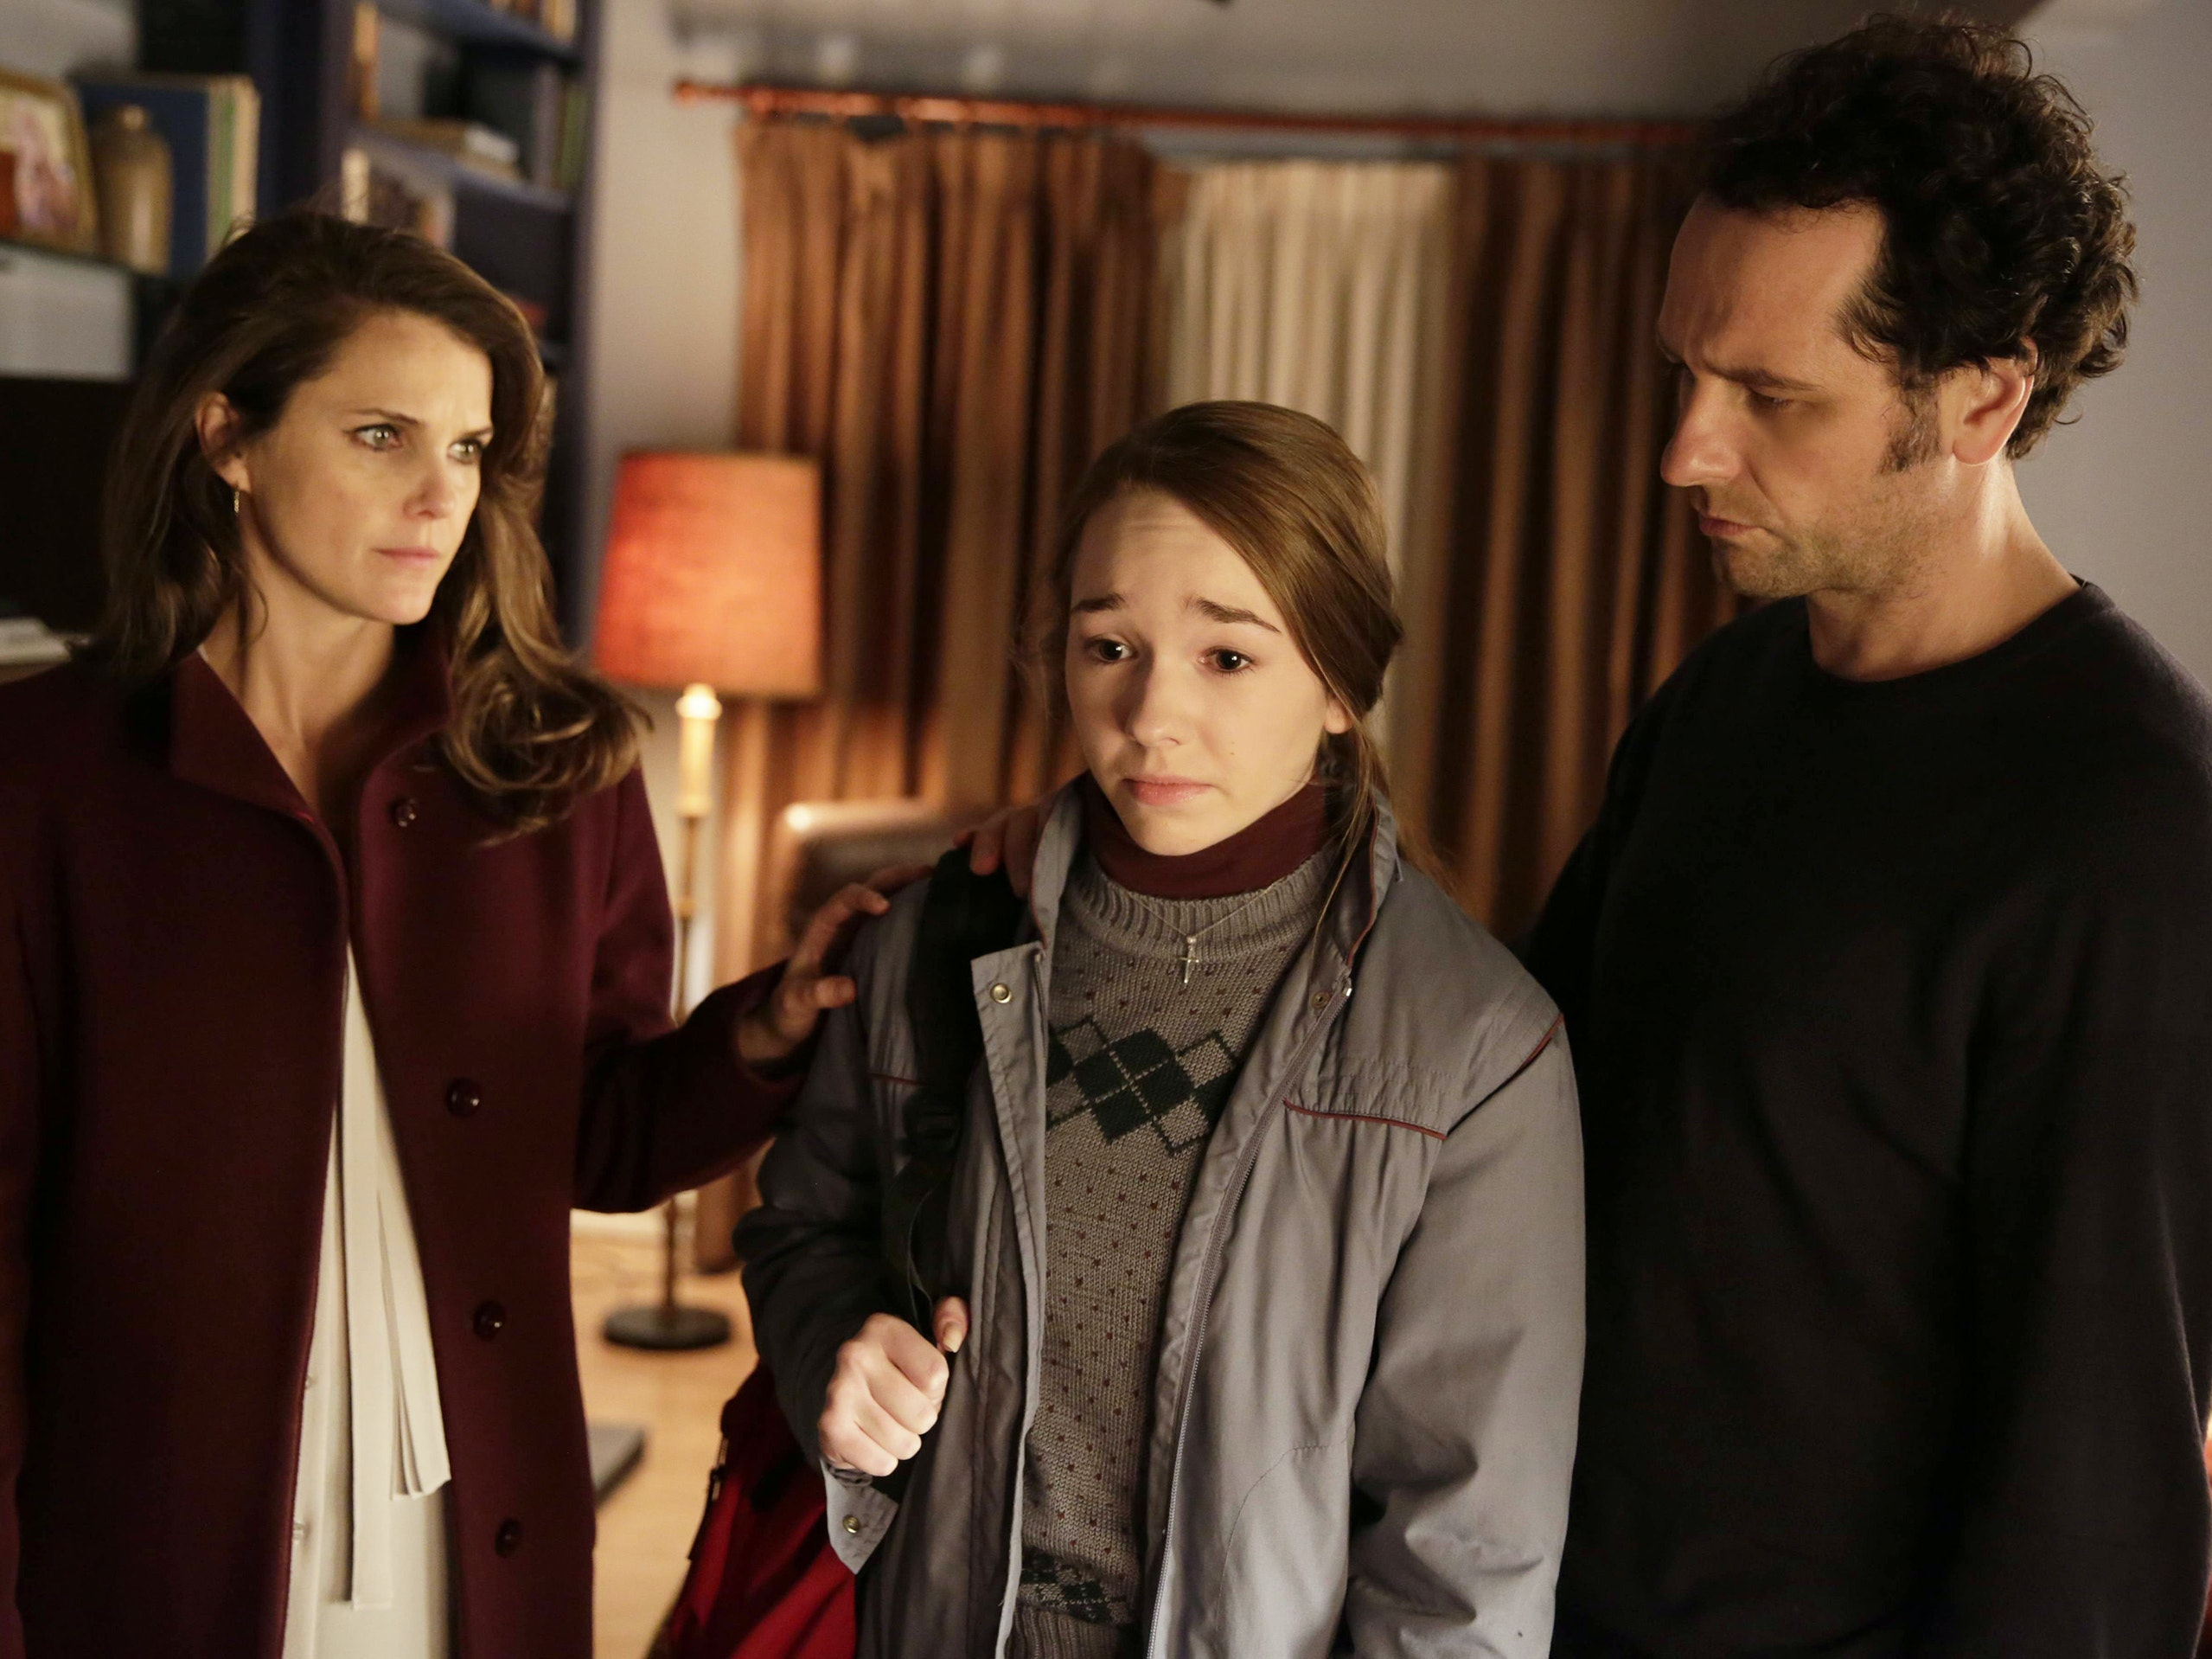 'The Americans' Season 4 Brings Everyone Together